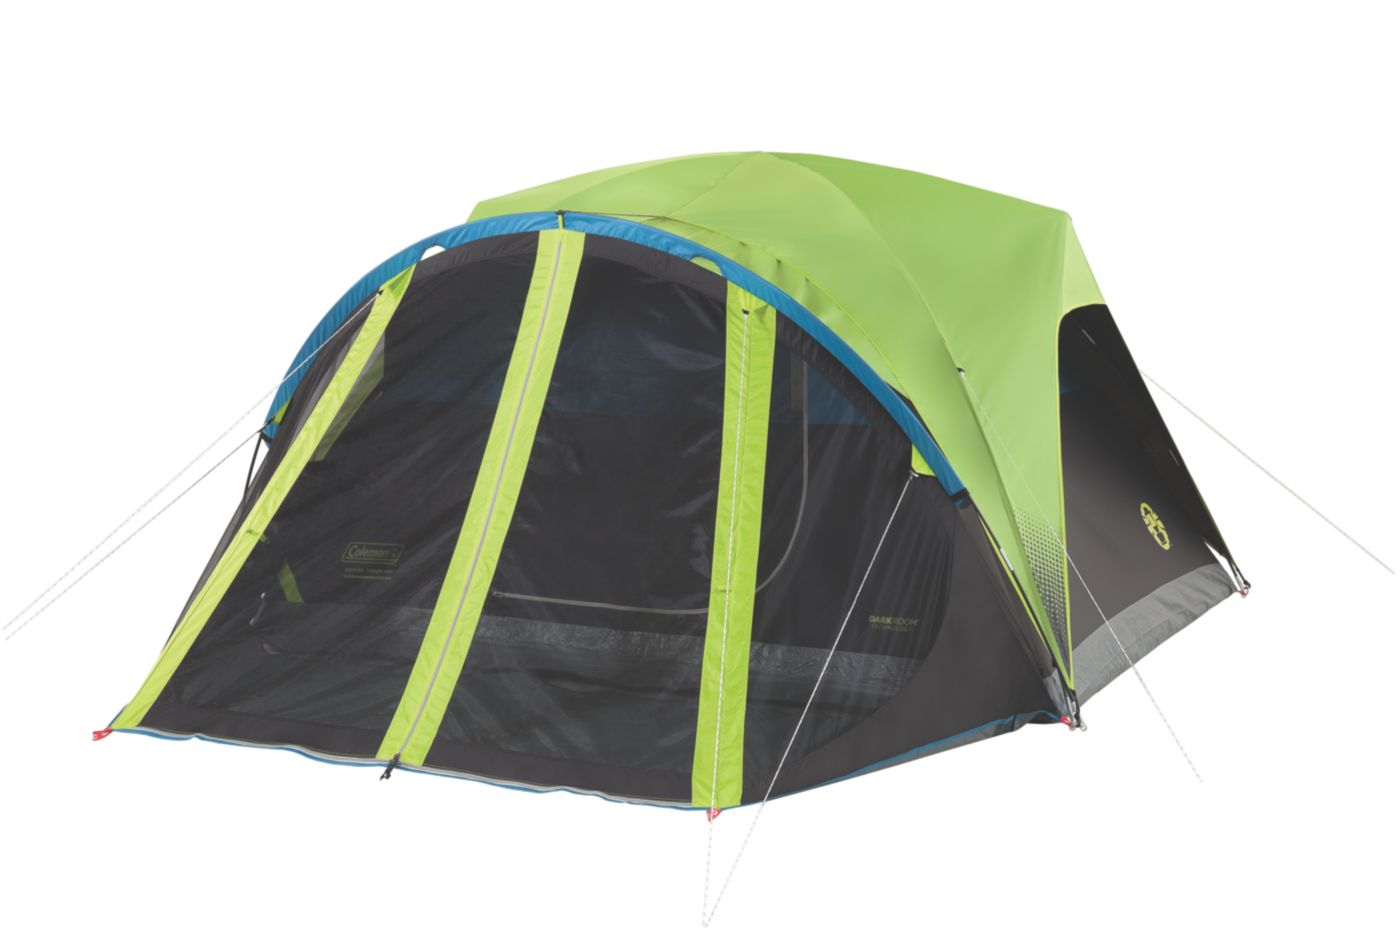 sc 1 st  Coleman & Tents for Camping | 4 Person Dome Tent | Coleman